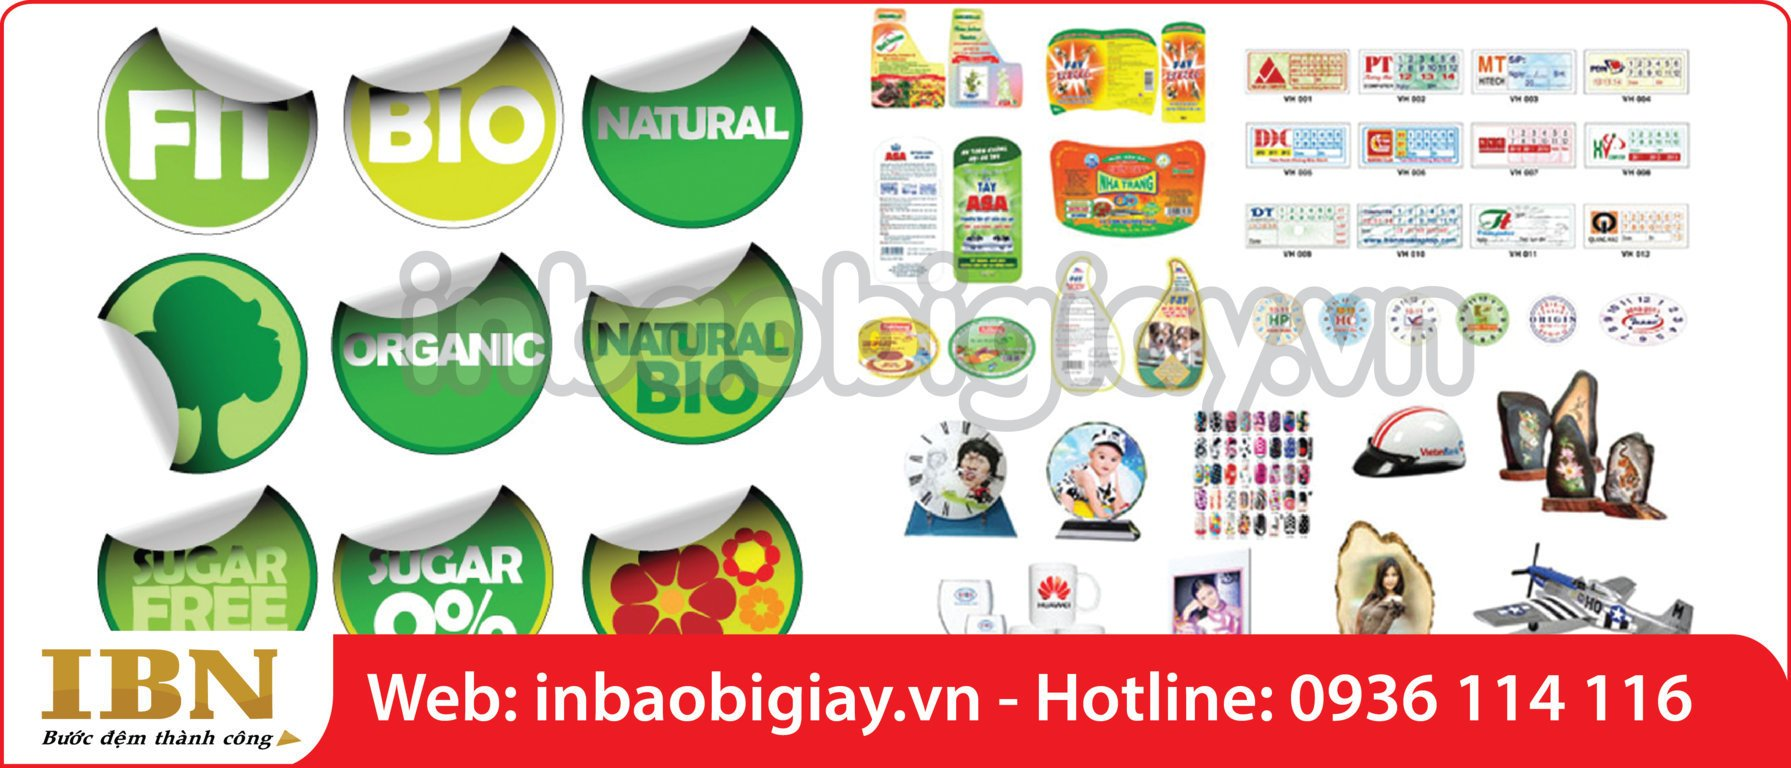 in decal cao cấp hcm